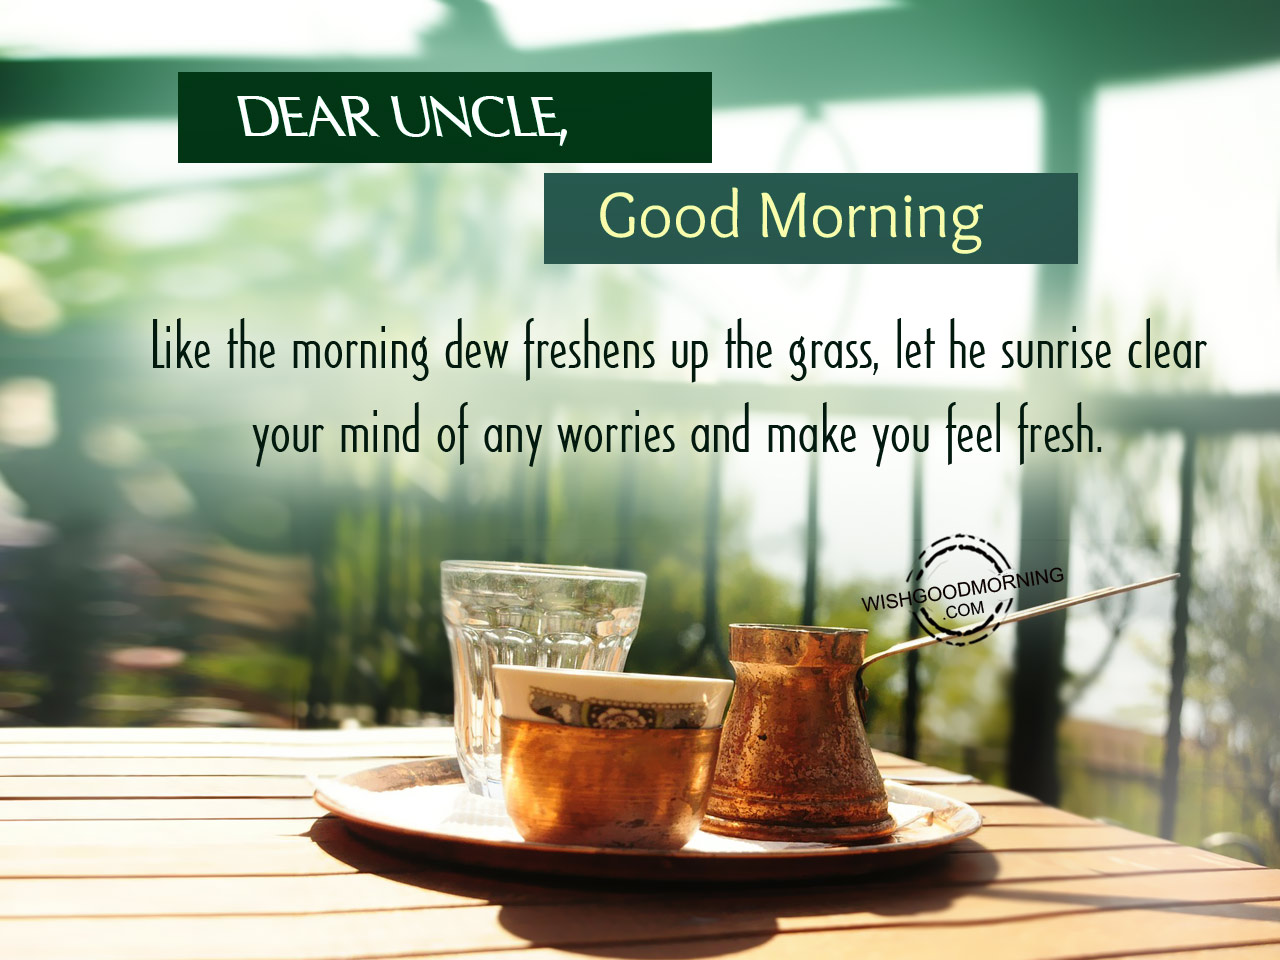 Good Morning Uncle : Good morning pictures wishgoodmorning